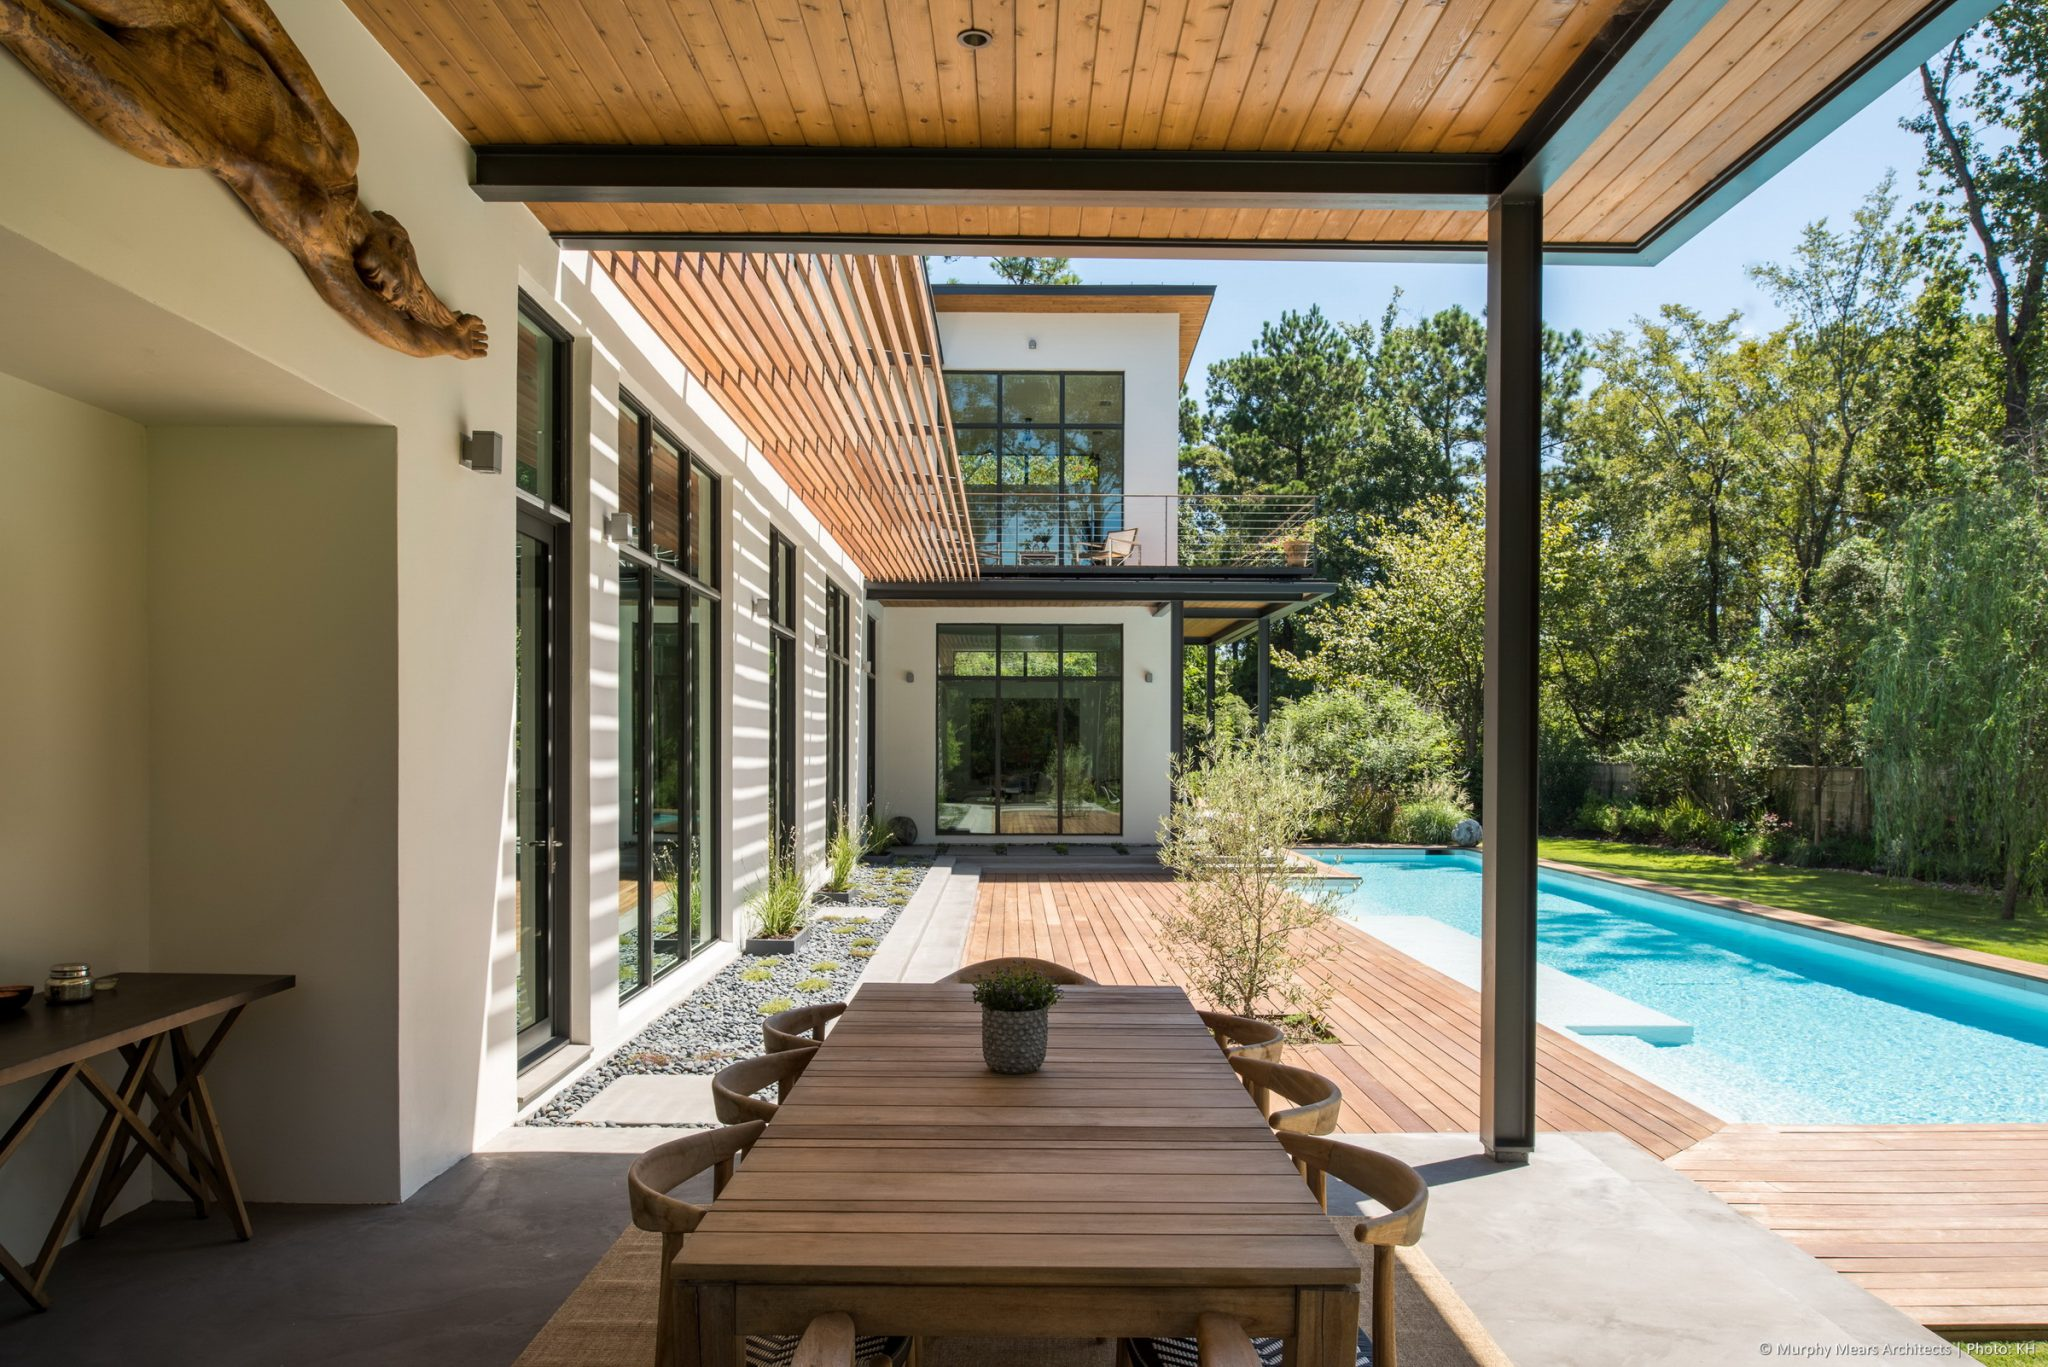 Carlton Woods Residence - Shaded outdoor space in the covered terrace, with a view of the family room and master bedroom beyond projecting into the backyard space.